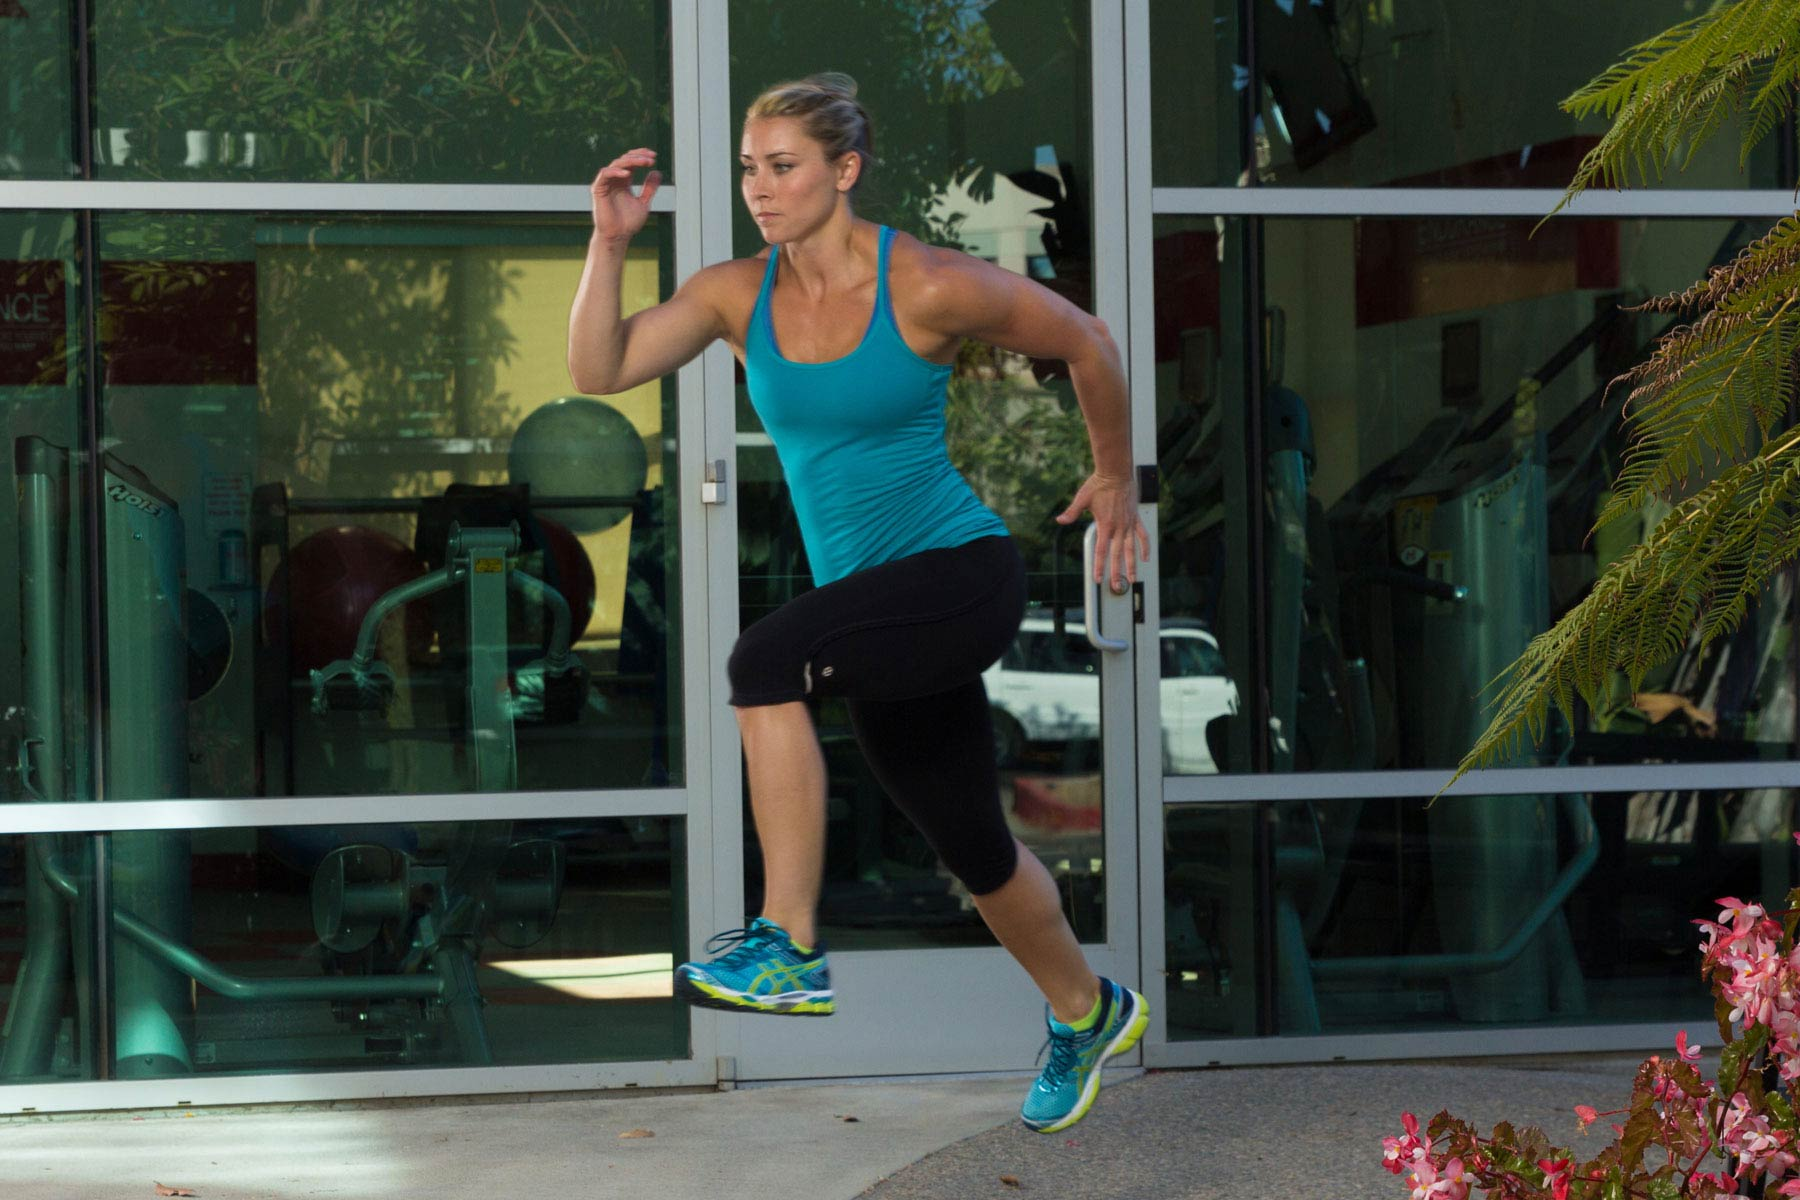 Total-body Plyometrics Workout